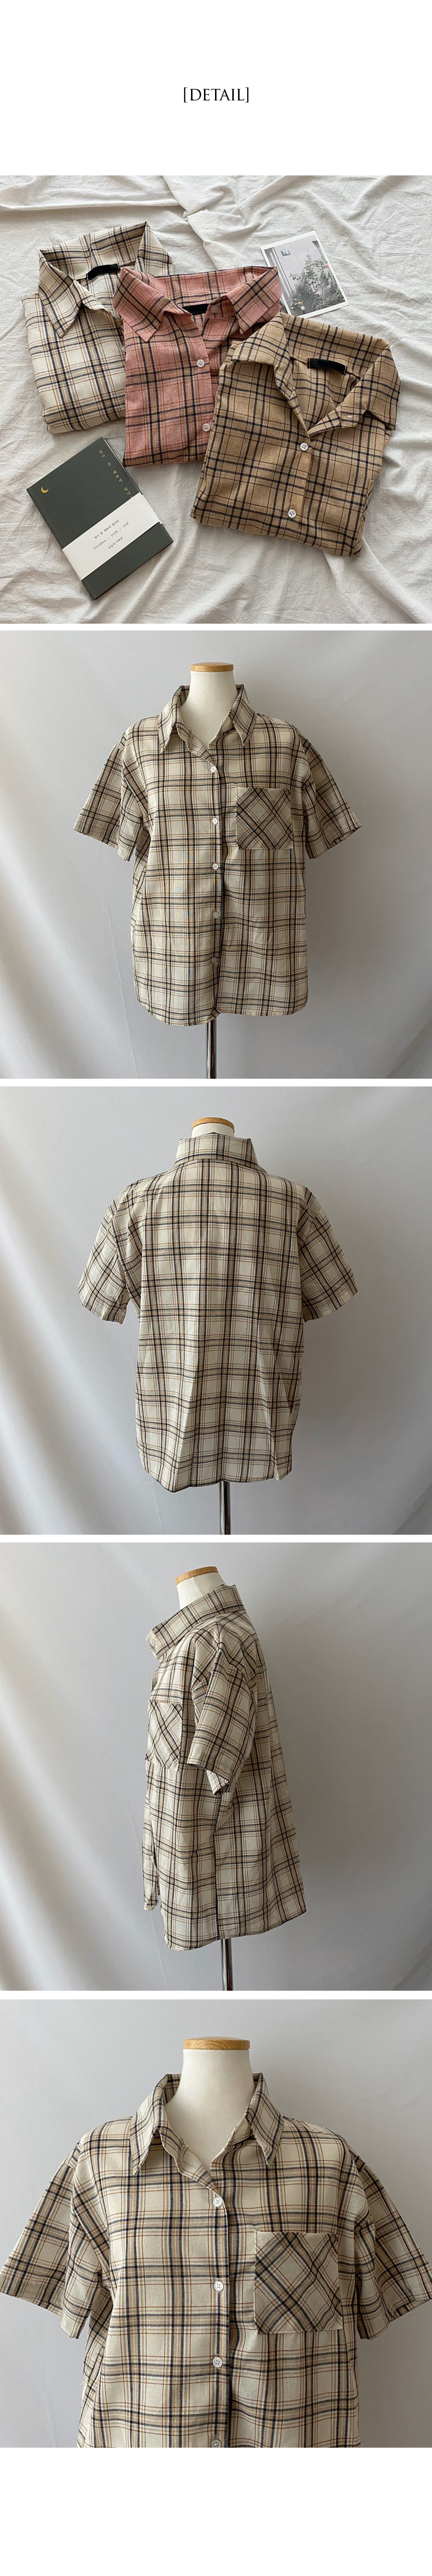 Ant linen check box shirt